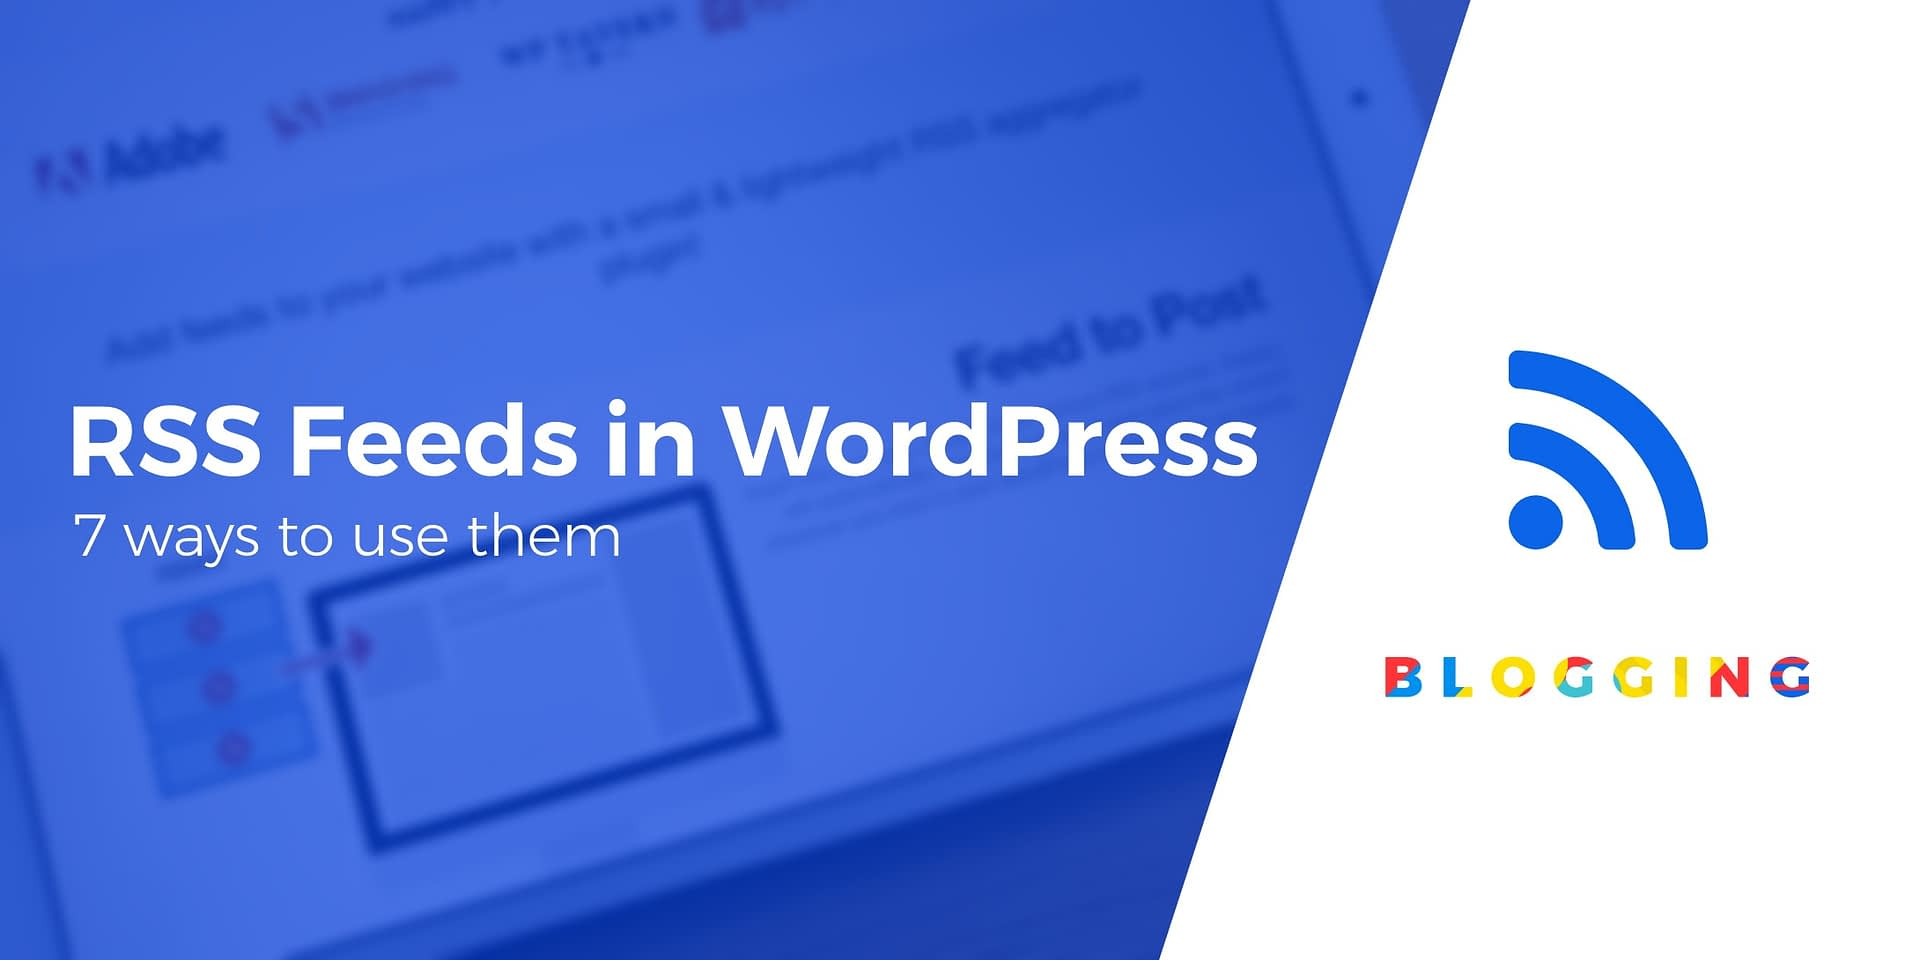 7 Ways to Use RSS Feeds in WordPress